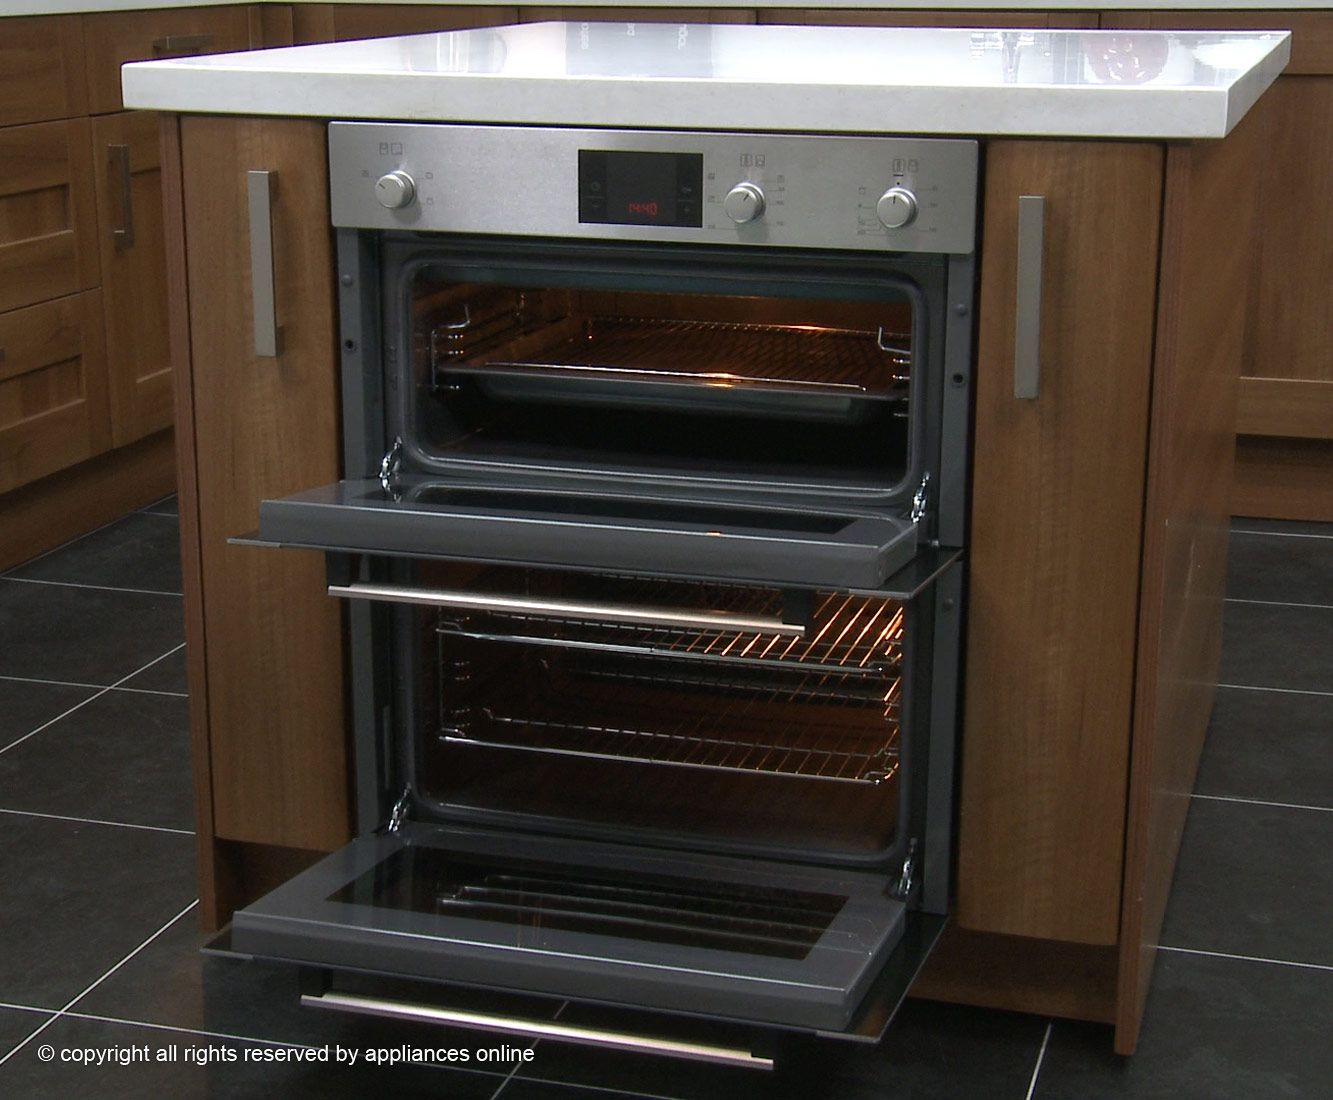 Below Counter Double Wall Oven I Like This Vs The Regular Double Wall Oven Always Feel Like I Am Gonna Wall Oven Electric Double Oven Wood Kitchen Counters